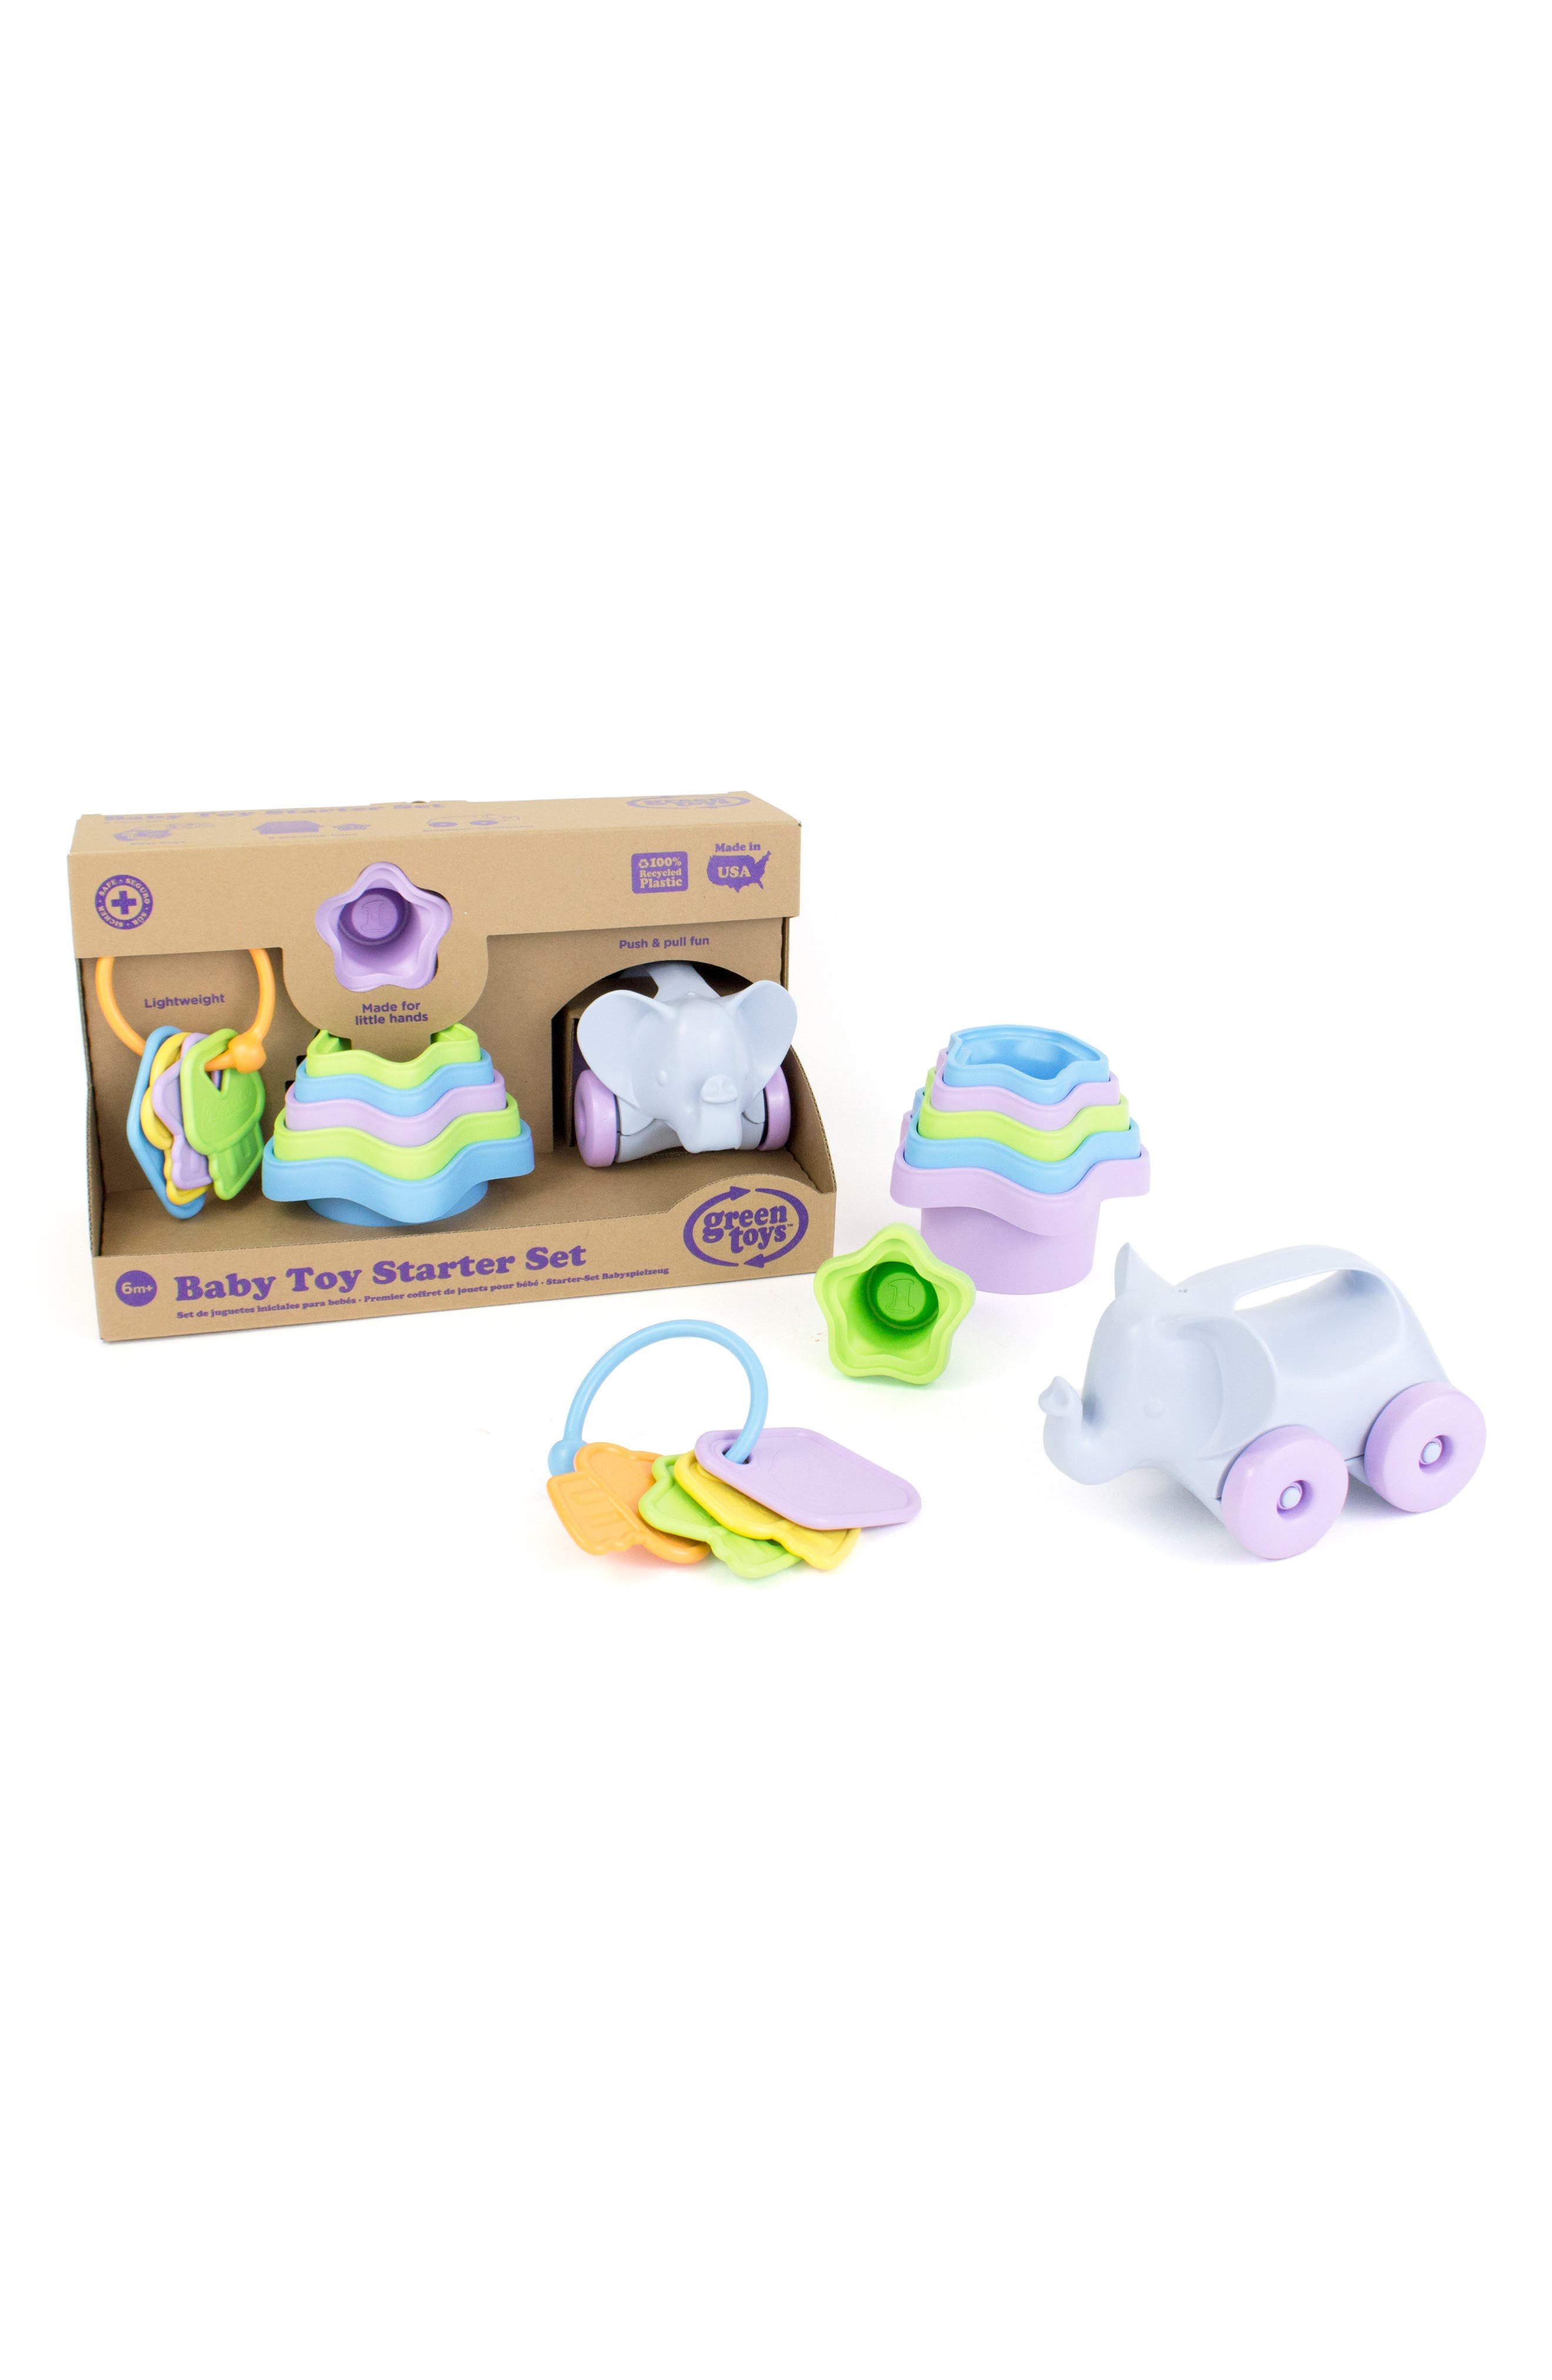 Eight-Piece Baby Toy Starter Set,                             Main thumbnail 1, color,                             400